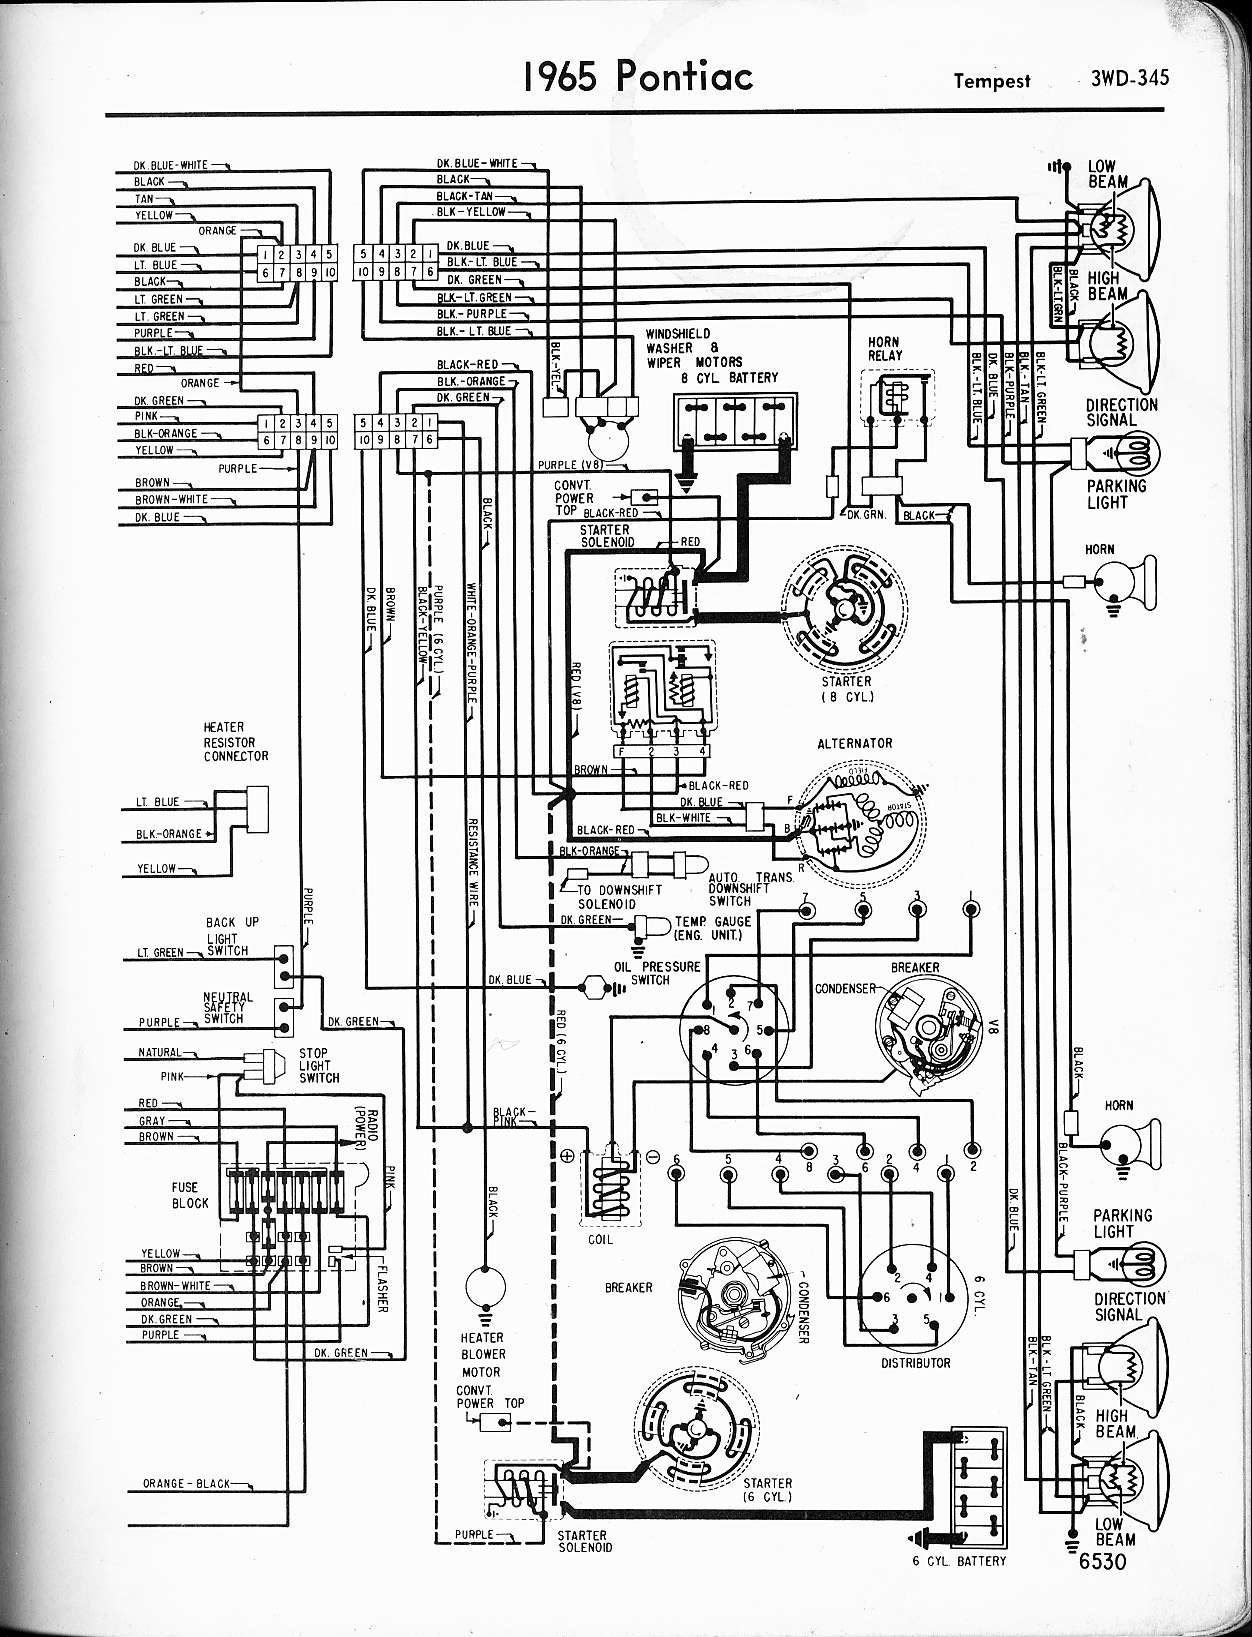 1955 Chevrolet Ignition Switch Wiring Diagram Circuit Chevy Bel Air besides Showthread likewise Catalog3 additionally Chevy Ignition Switch Wiring Diagram Harness Auto in addition 1969 Corvette Headlight Switch Wiring Diagram 9 Chevy Truck 69. on 1957 chevy wiring harness diagram